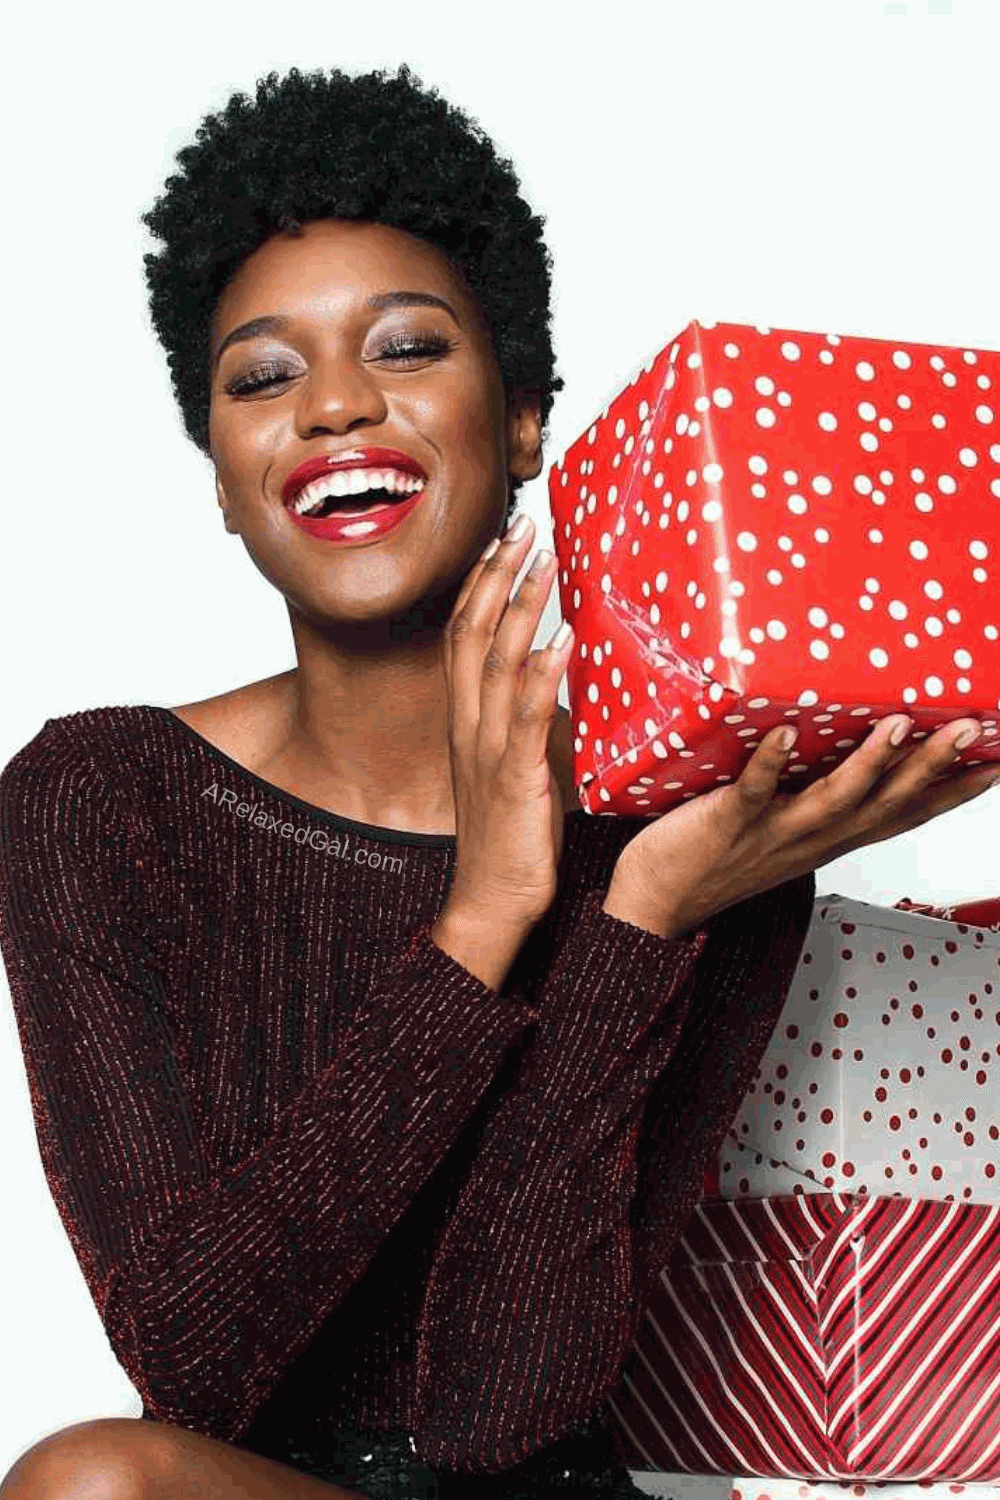 The Best Makeup To Add Sparkle To Your Holiday Makeup Looks   A Relaxed Gal